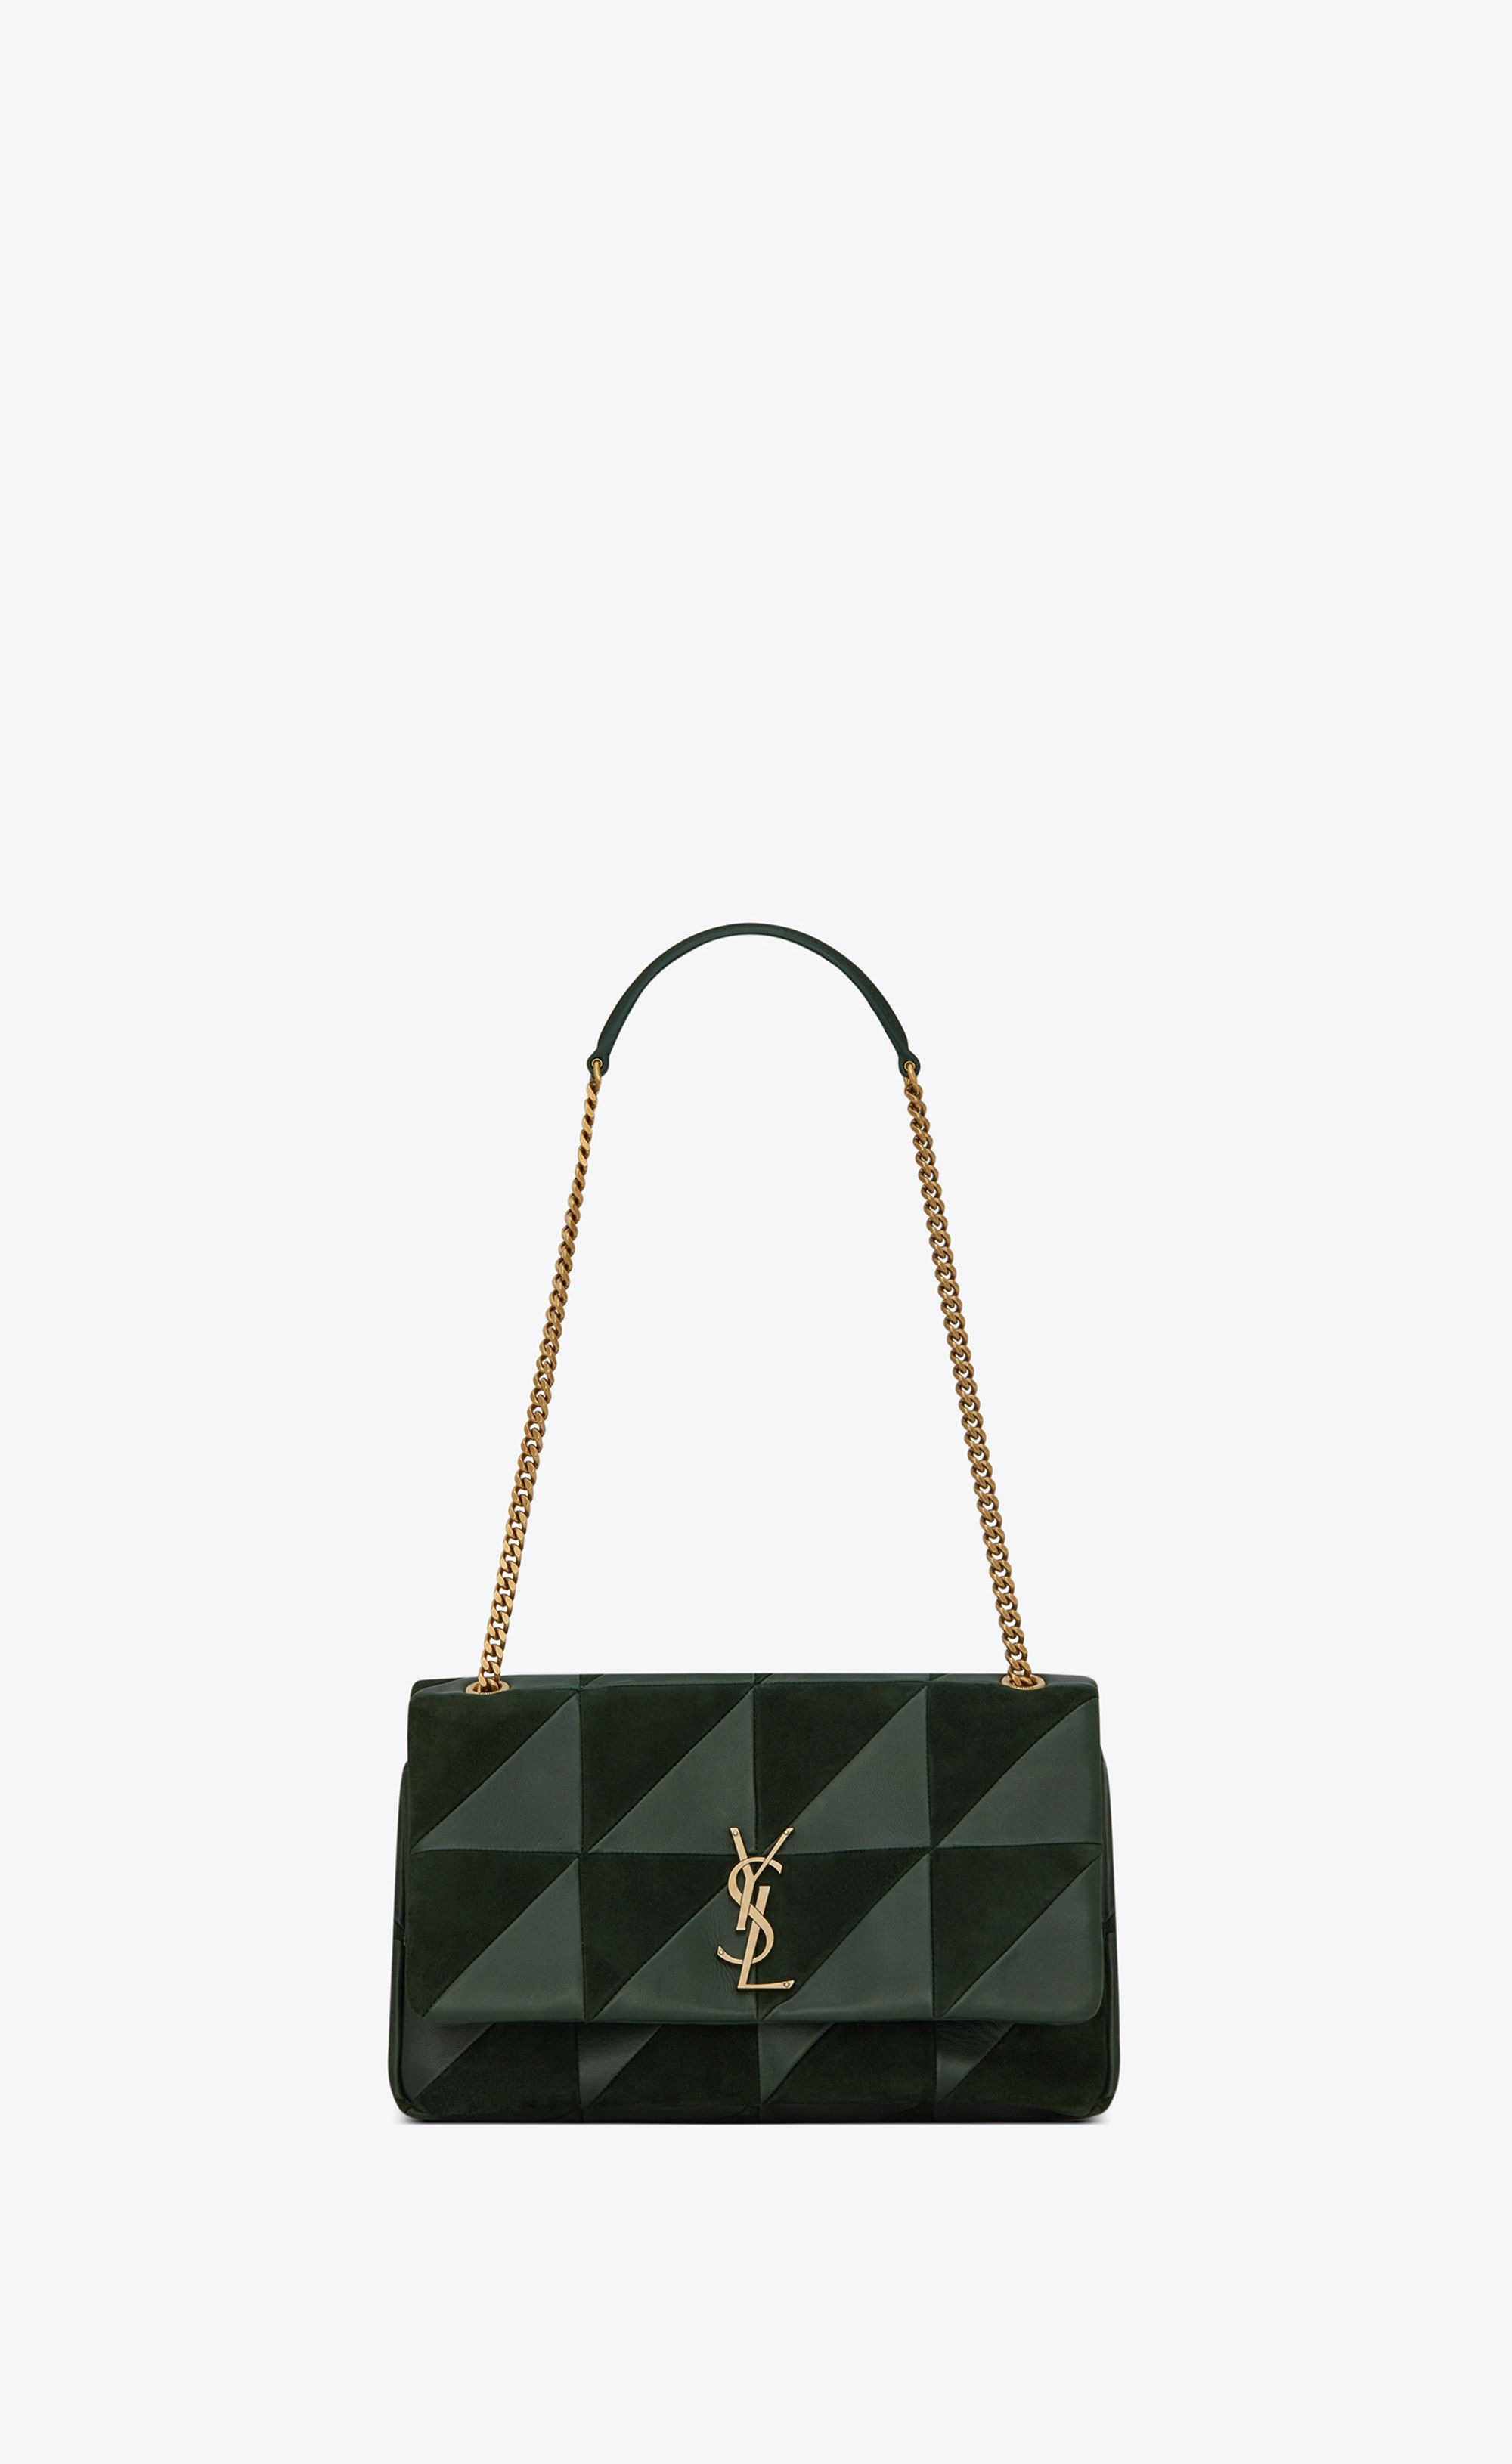 Saint Laurent Medium Jamie Bag In Dark Green Leather And Suede Patchwork  933467892ed62